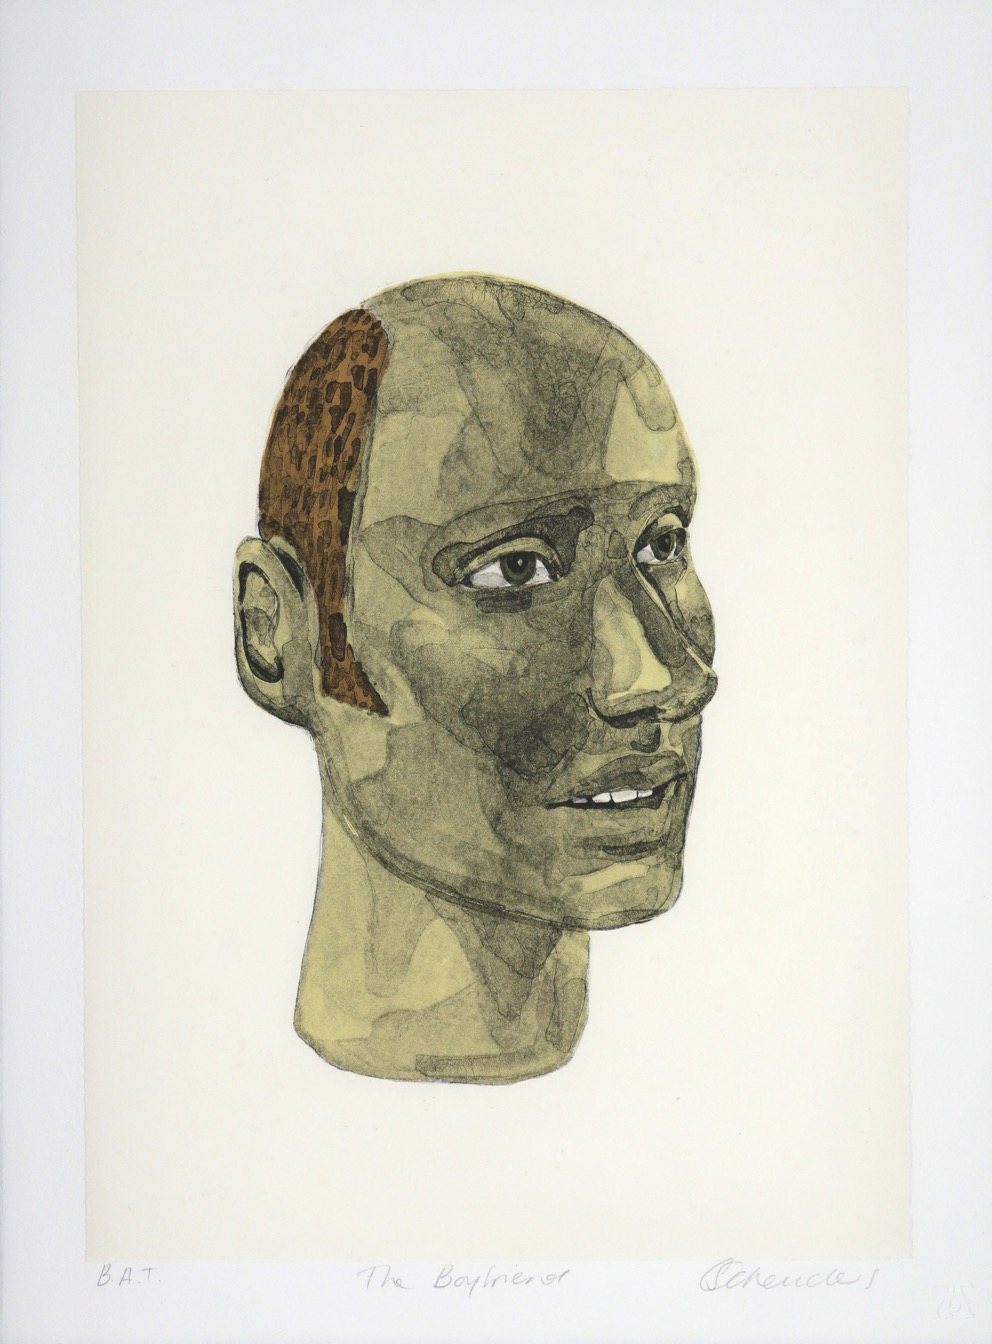 Portrait bust of a young balding man seen from the side